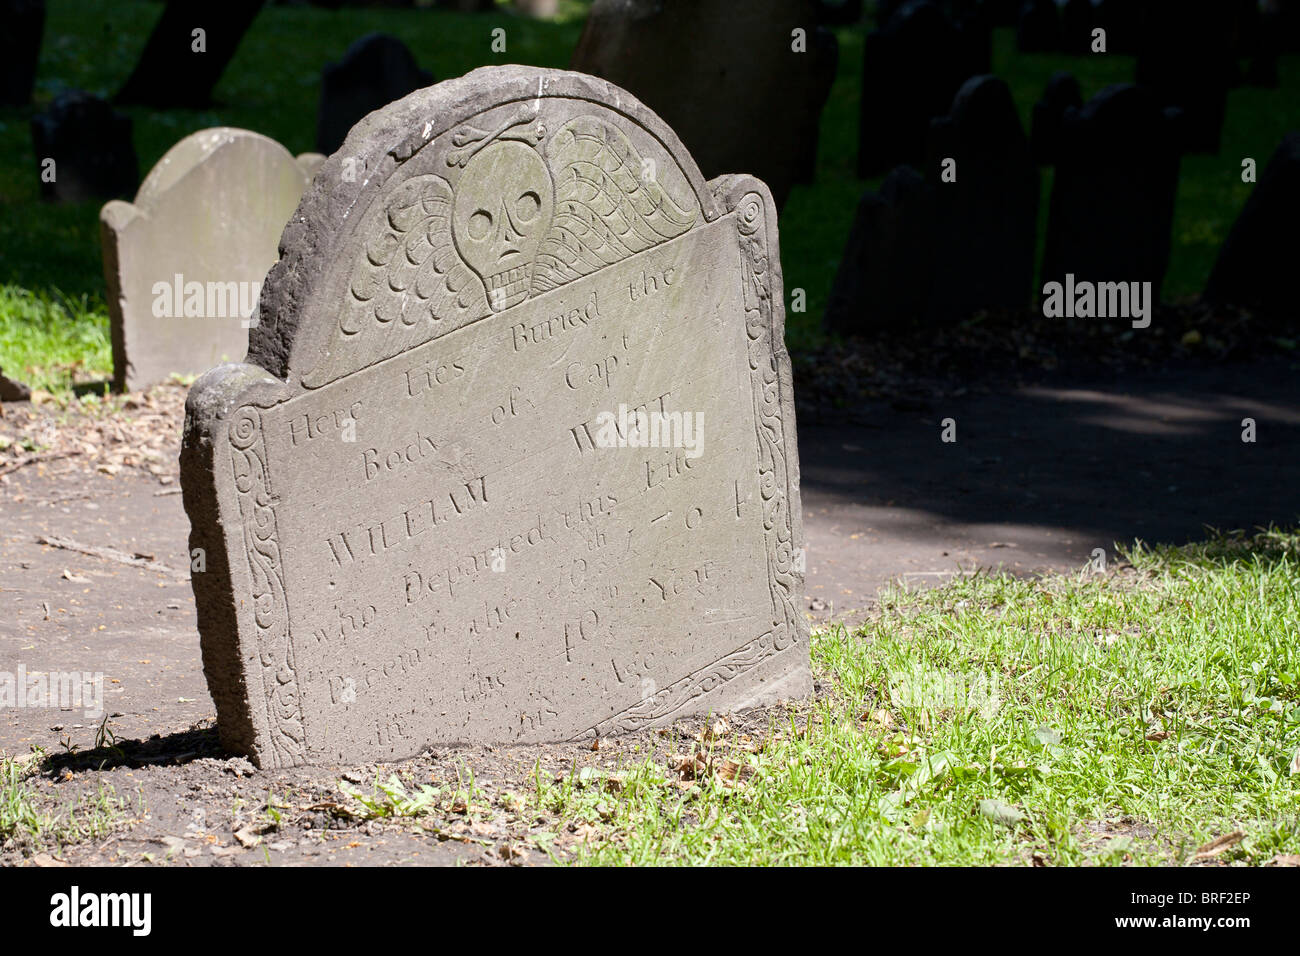 Old Tombstone for William Watt sinking. Skull with wings design of an old grave stone in the Old Granary Burying - Stock Image